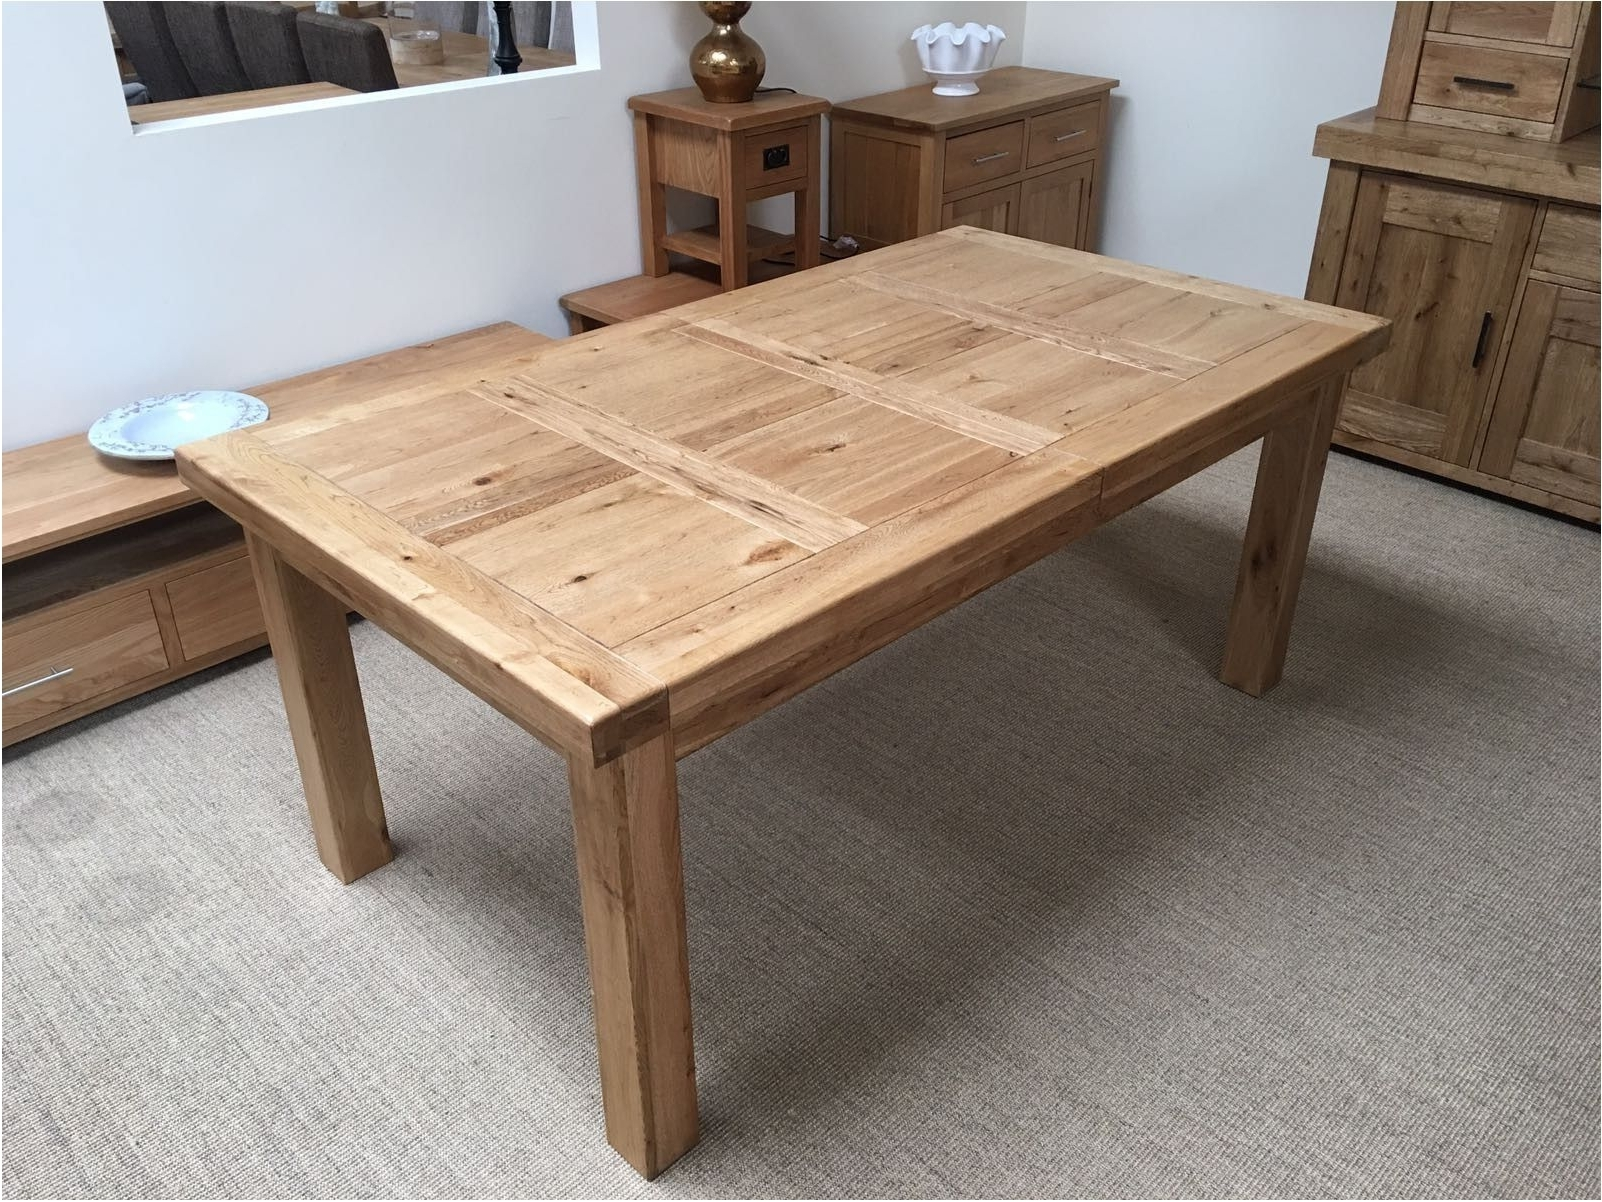 Latest Solid Oak Dining Tables Intended For Astounding Oxford Solid Oak Extending Dining Table Oak Furniture (View 7 of 25)